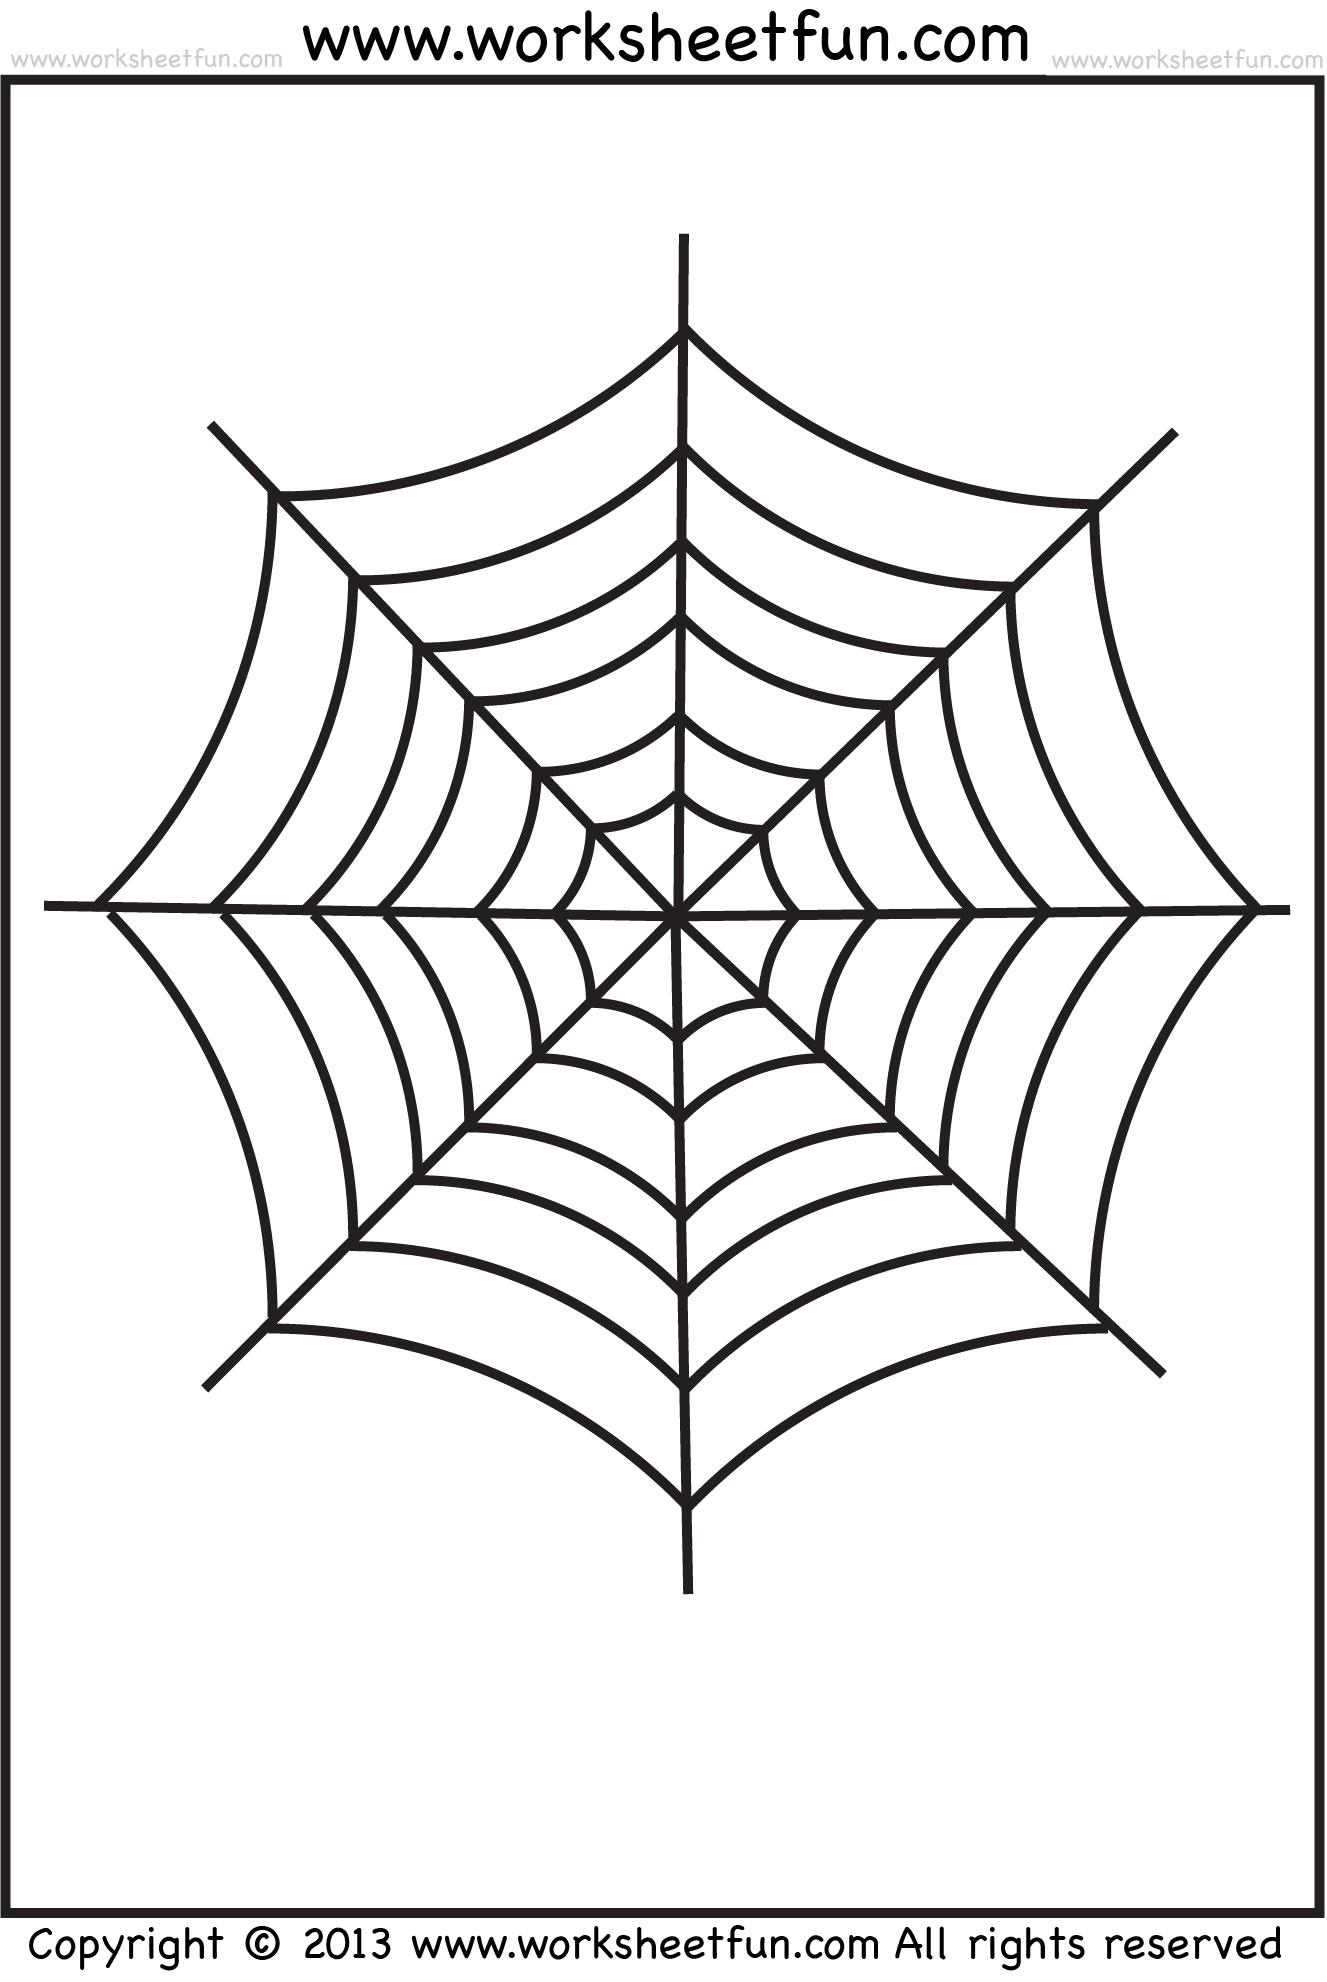 Spider Web Tracing And Coloring 2 Halloween Worksheets Free